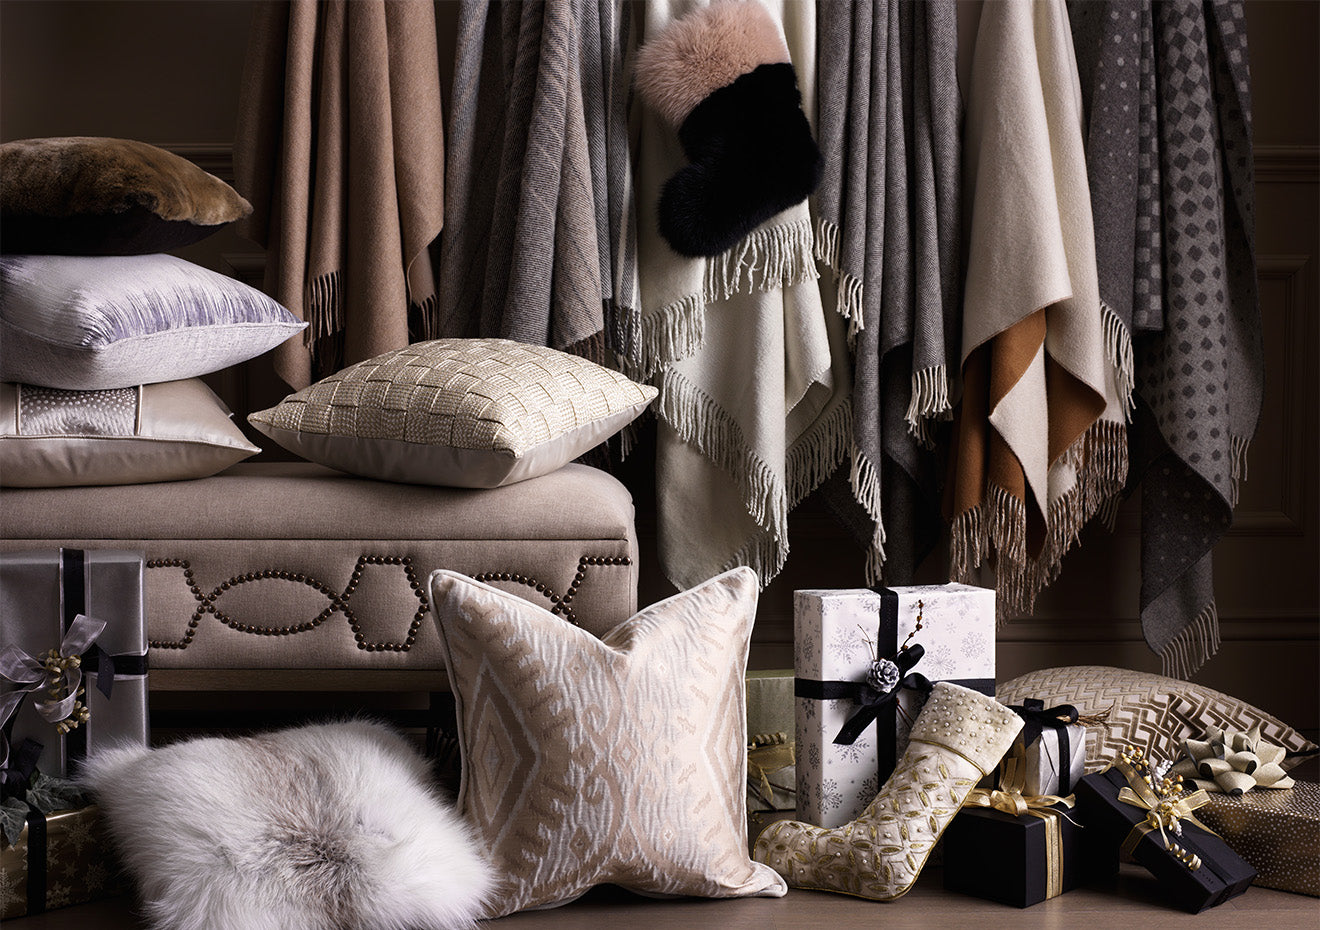 Luxury cushions and throws from Luxdeco